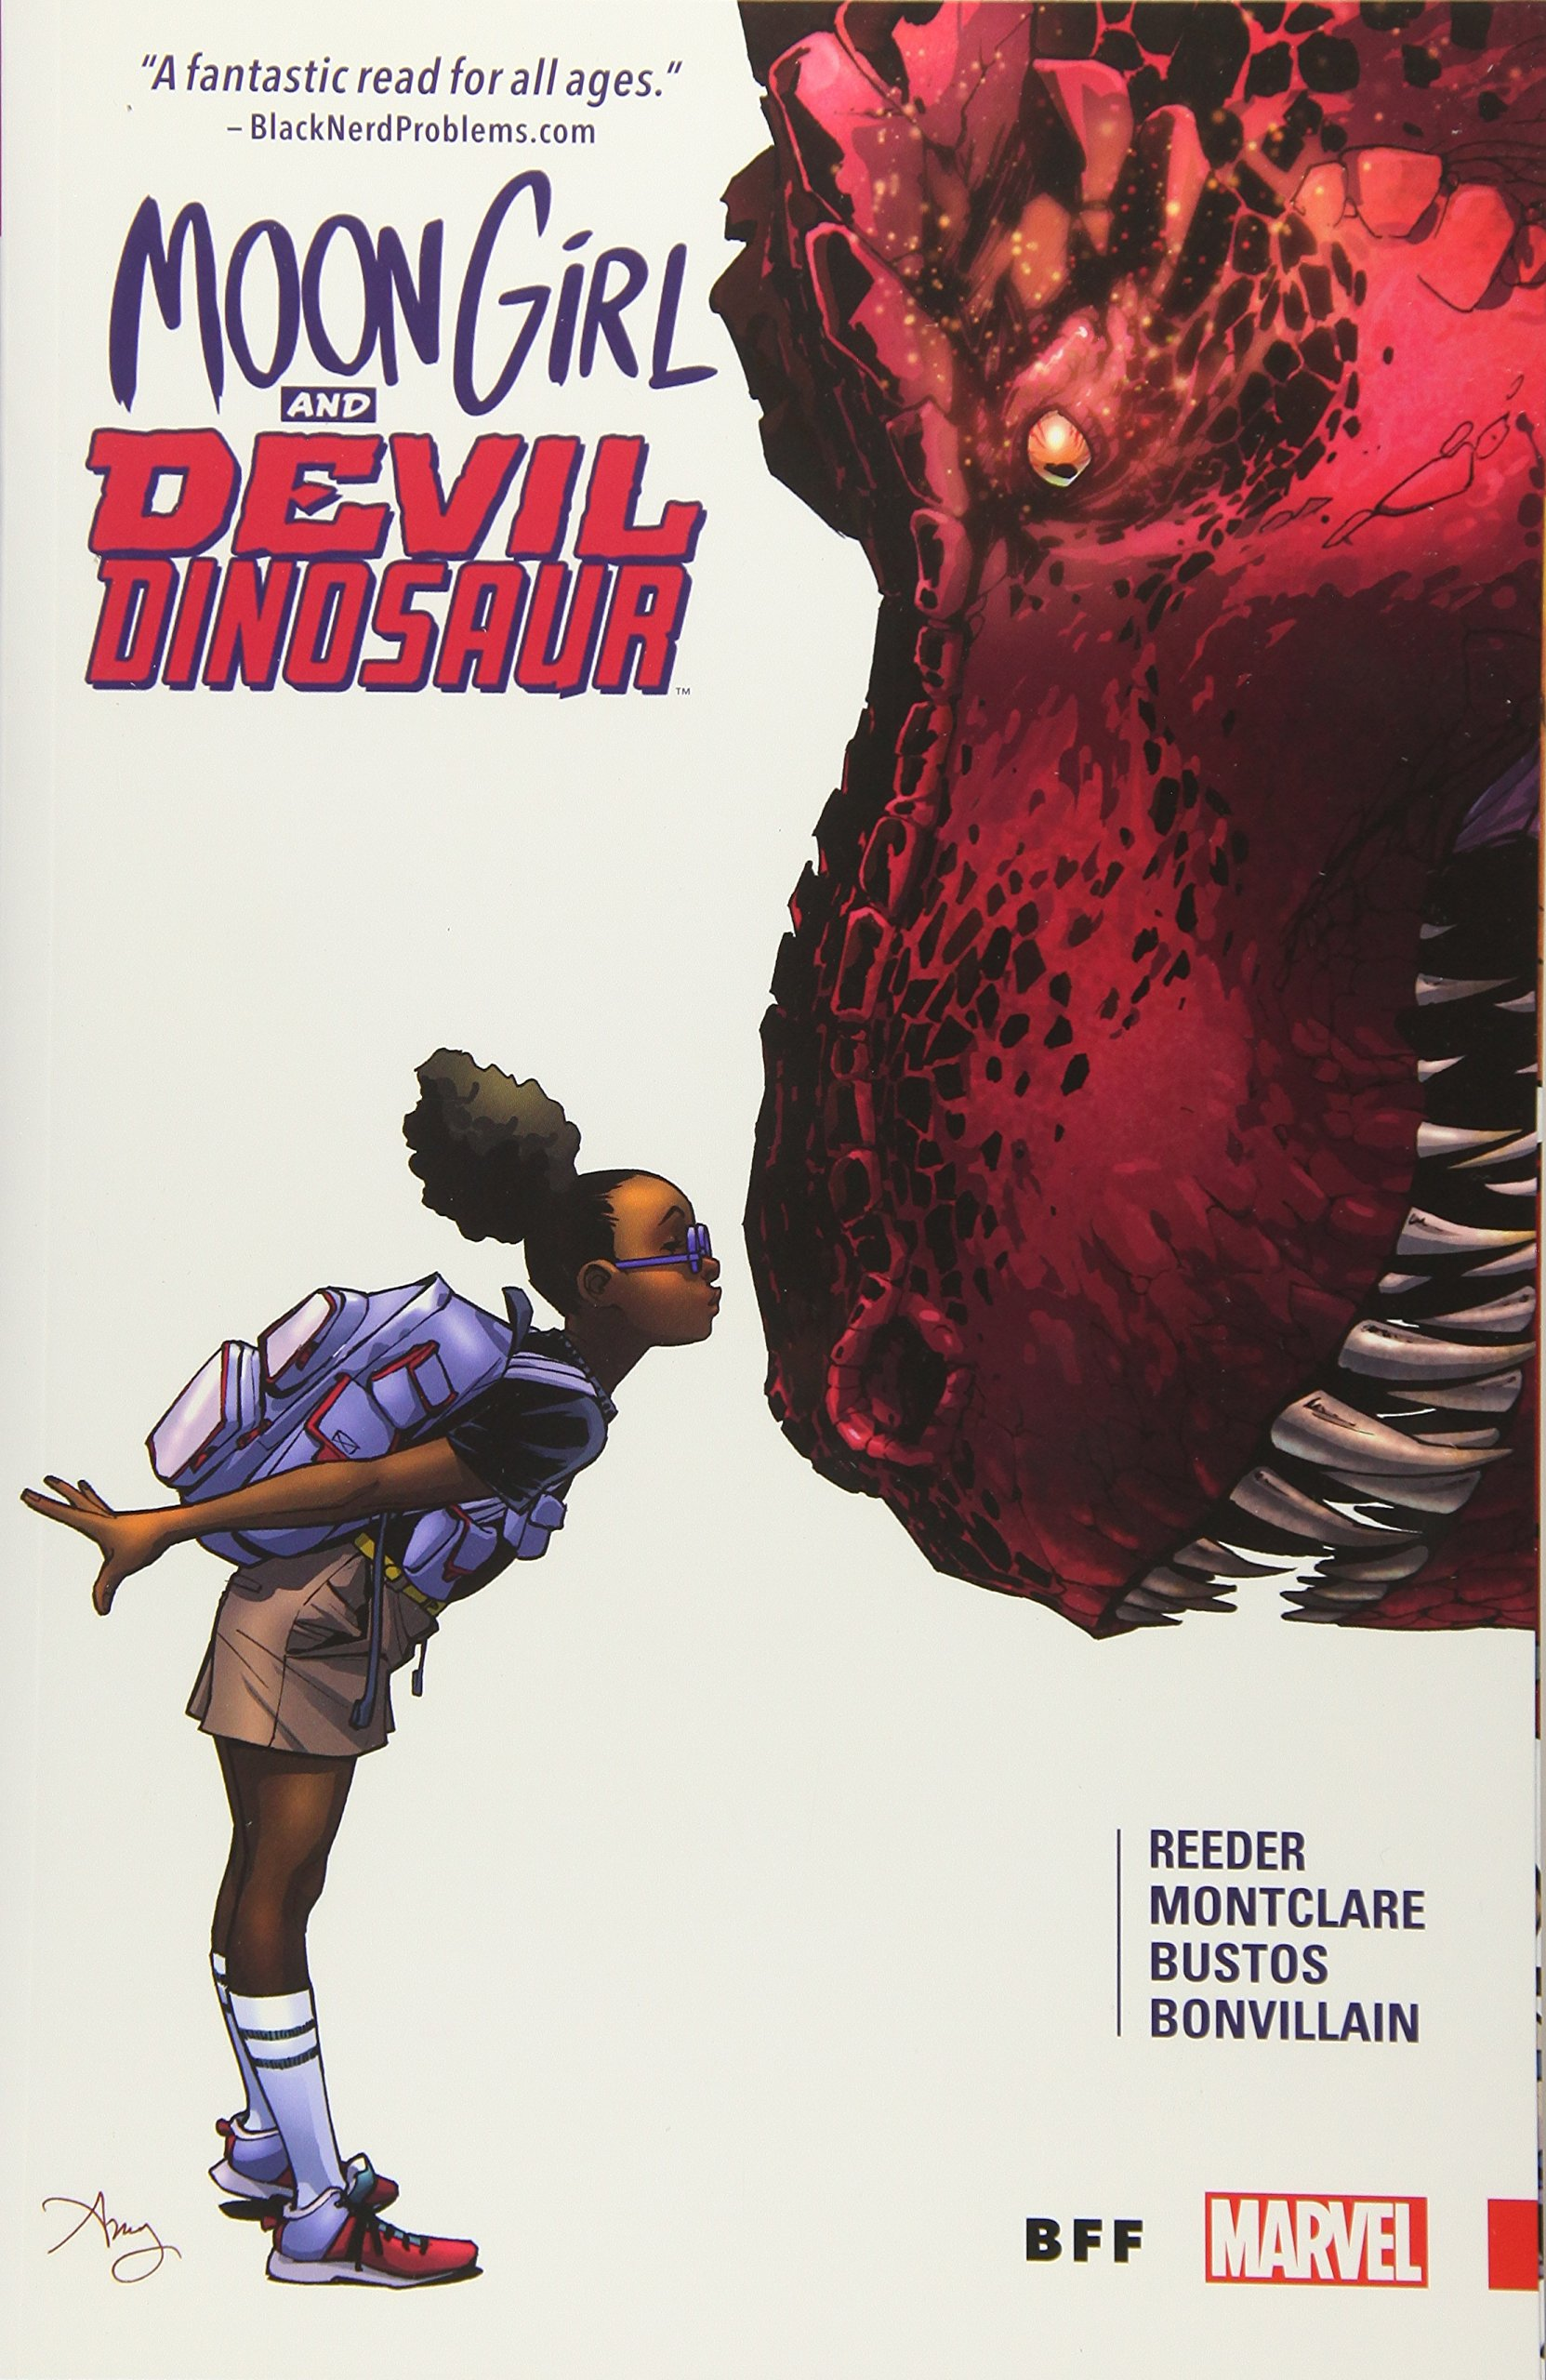 Cover for Moon Girl and Devil Dinosaur book.